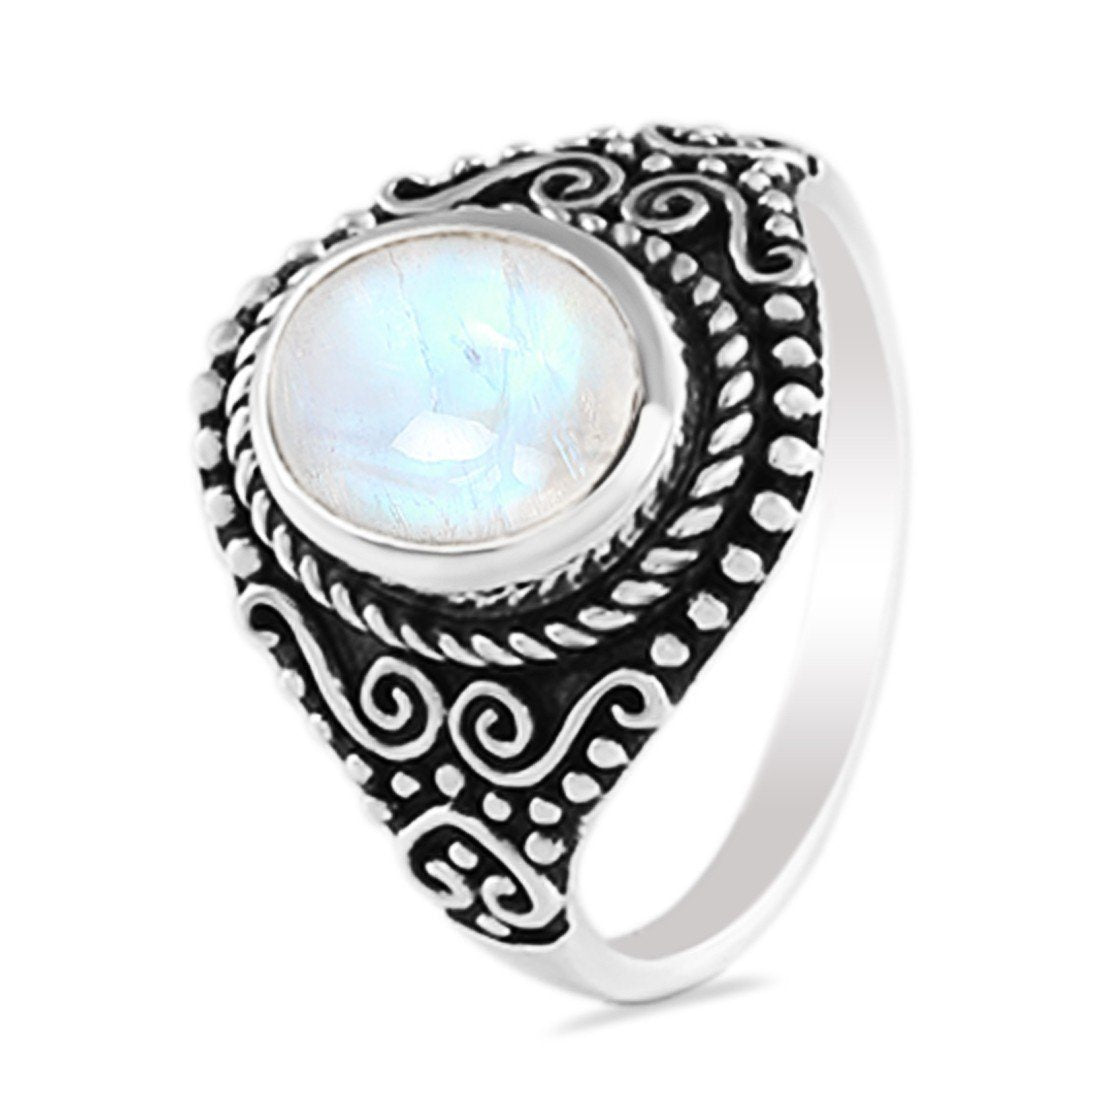 Moonstone Ring-Magical Alchemy Sale Item 925 SILVER & MOONSTONE